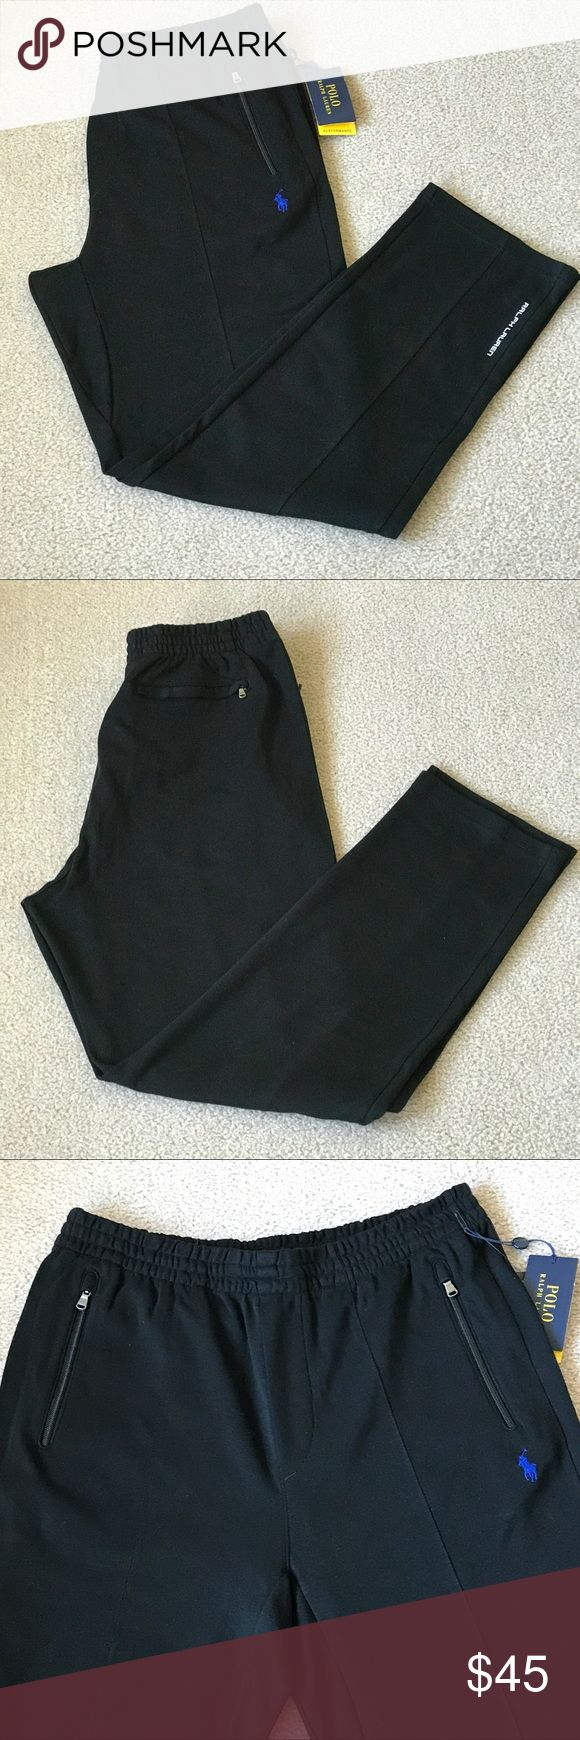 POLO RALPH LAUREN PERFORMANCE NWT MEN's POLO RALPH LAUREN PERFORMANCE SWEAT PANTS. Brand new with tags attached. Size: Large Color: Polo Black  Elastic waistband with drawstring inside.  Two zip pockets in the front, one zip pocket in the back. POLO  RALPH LAUREN Pants Sweatpants & Joggers